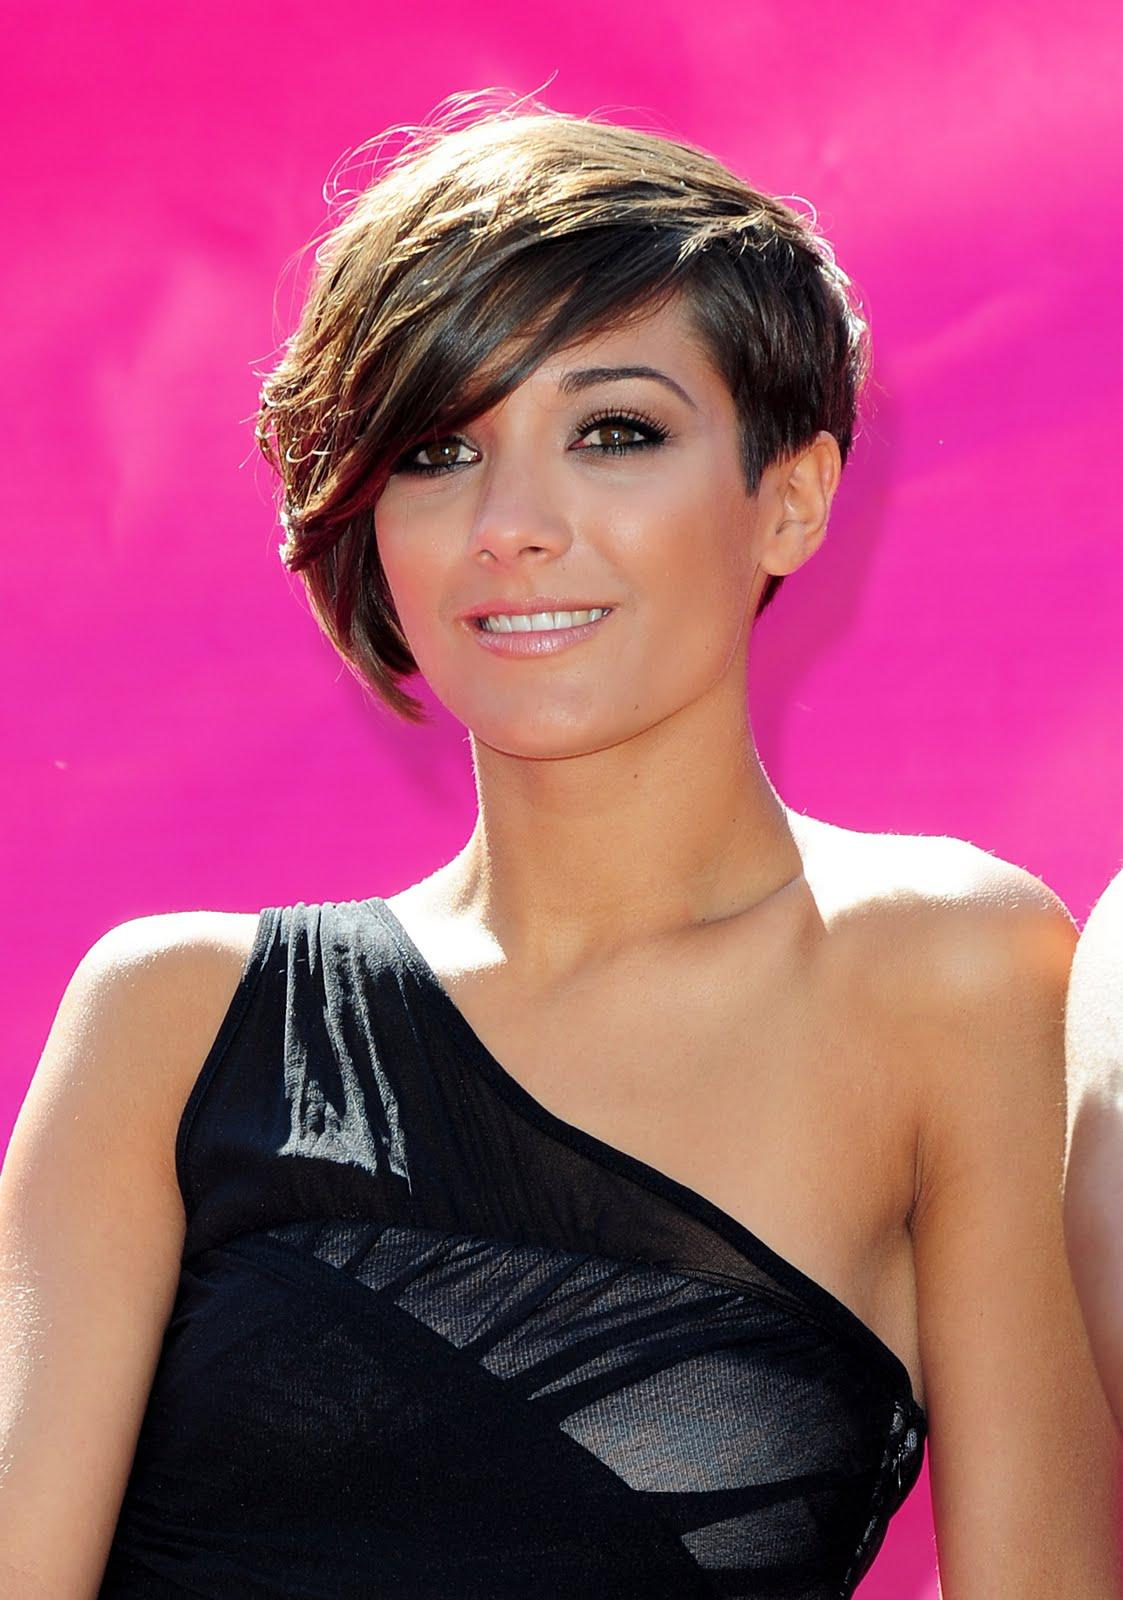 Frankie Bridge Nude Page 2 Pictures Naked Oops